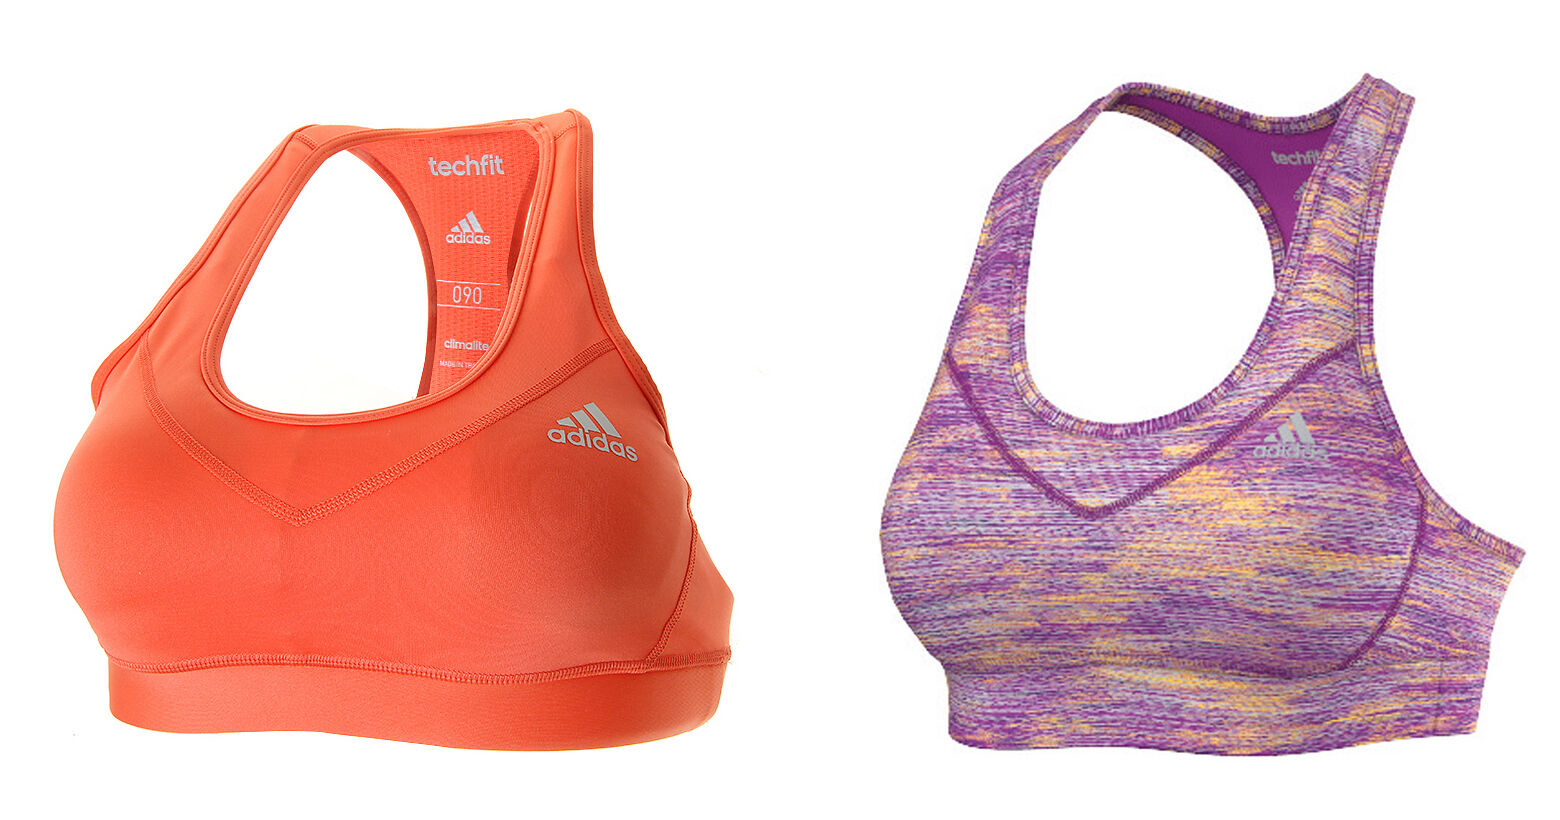 Adidas Women's  Techfit Bra AY3146 BK3779 Yoga Training Climalite cool tank Top  for sale online